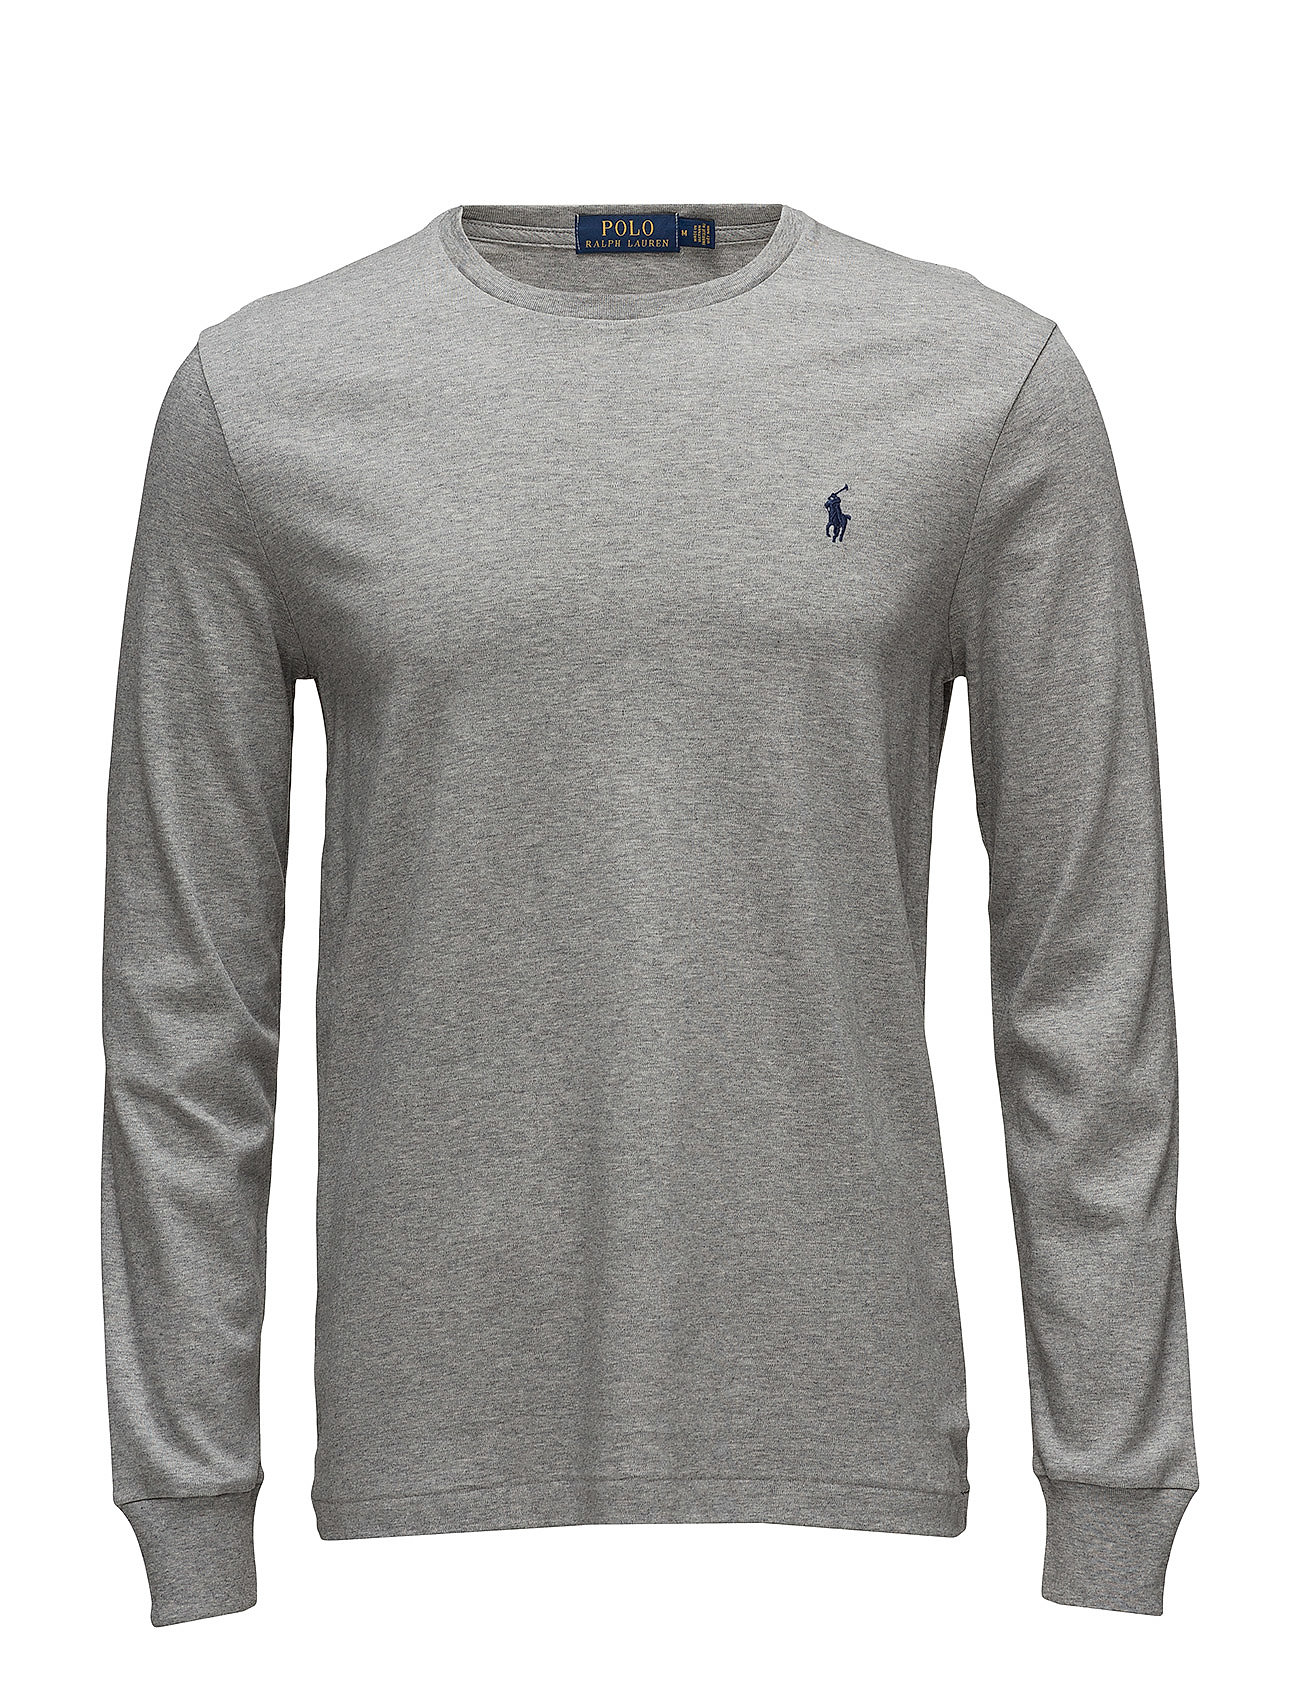 cede05f71 Pima Soft Touch-lsl-knt (Andover Heather) (£41.40) - Polo Ralph ...